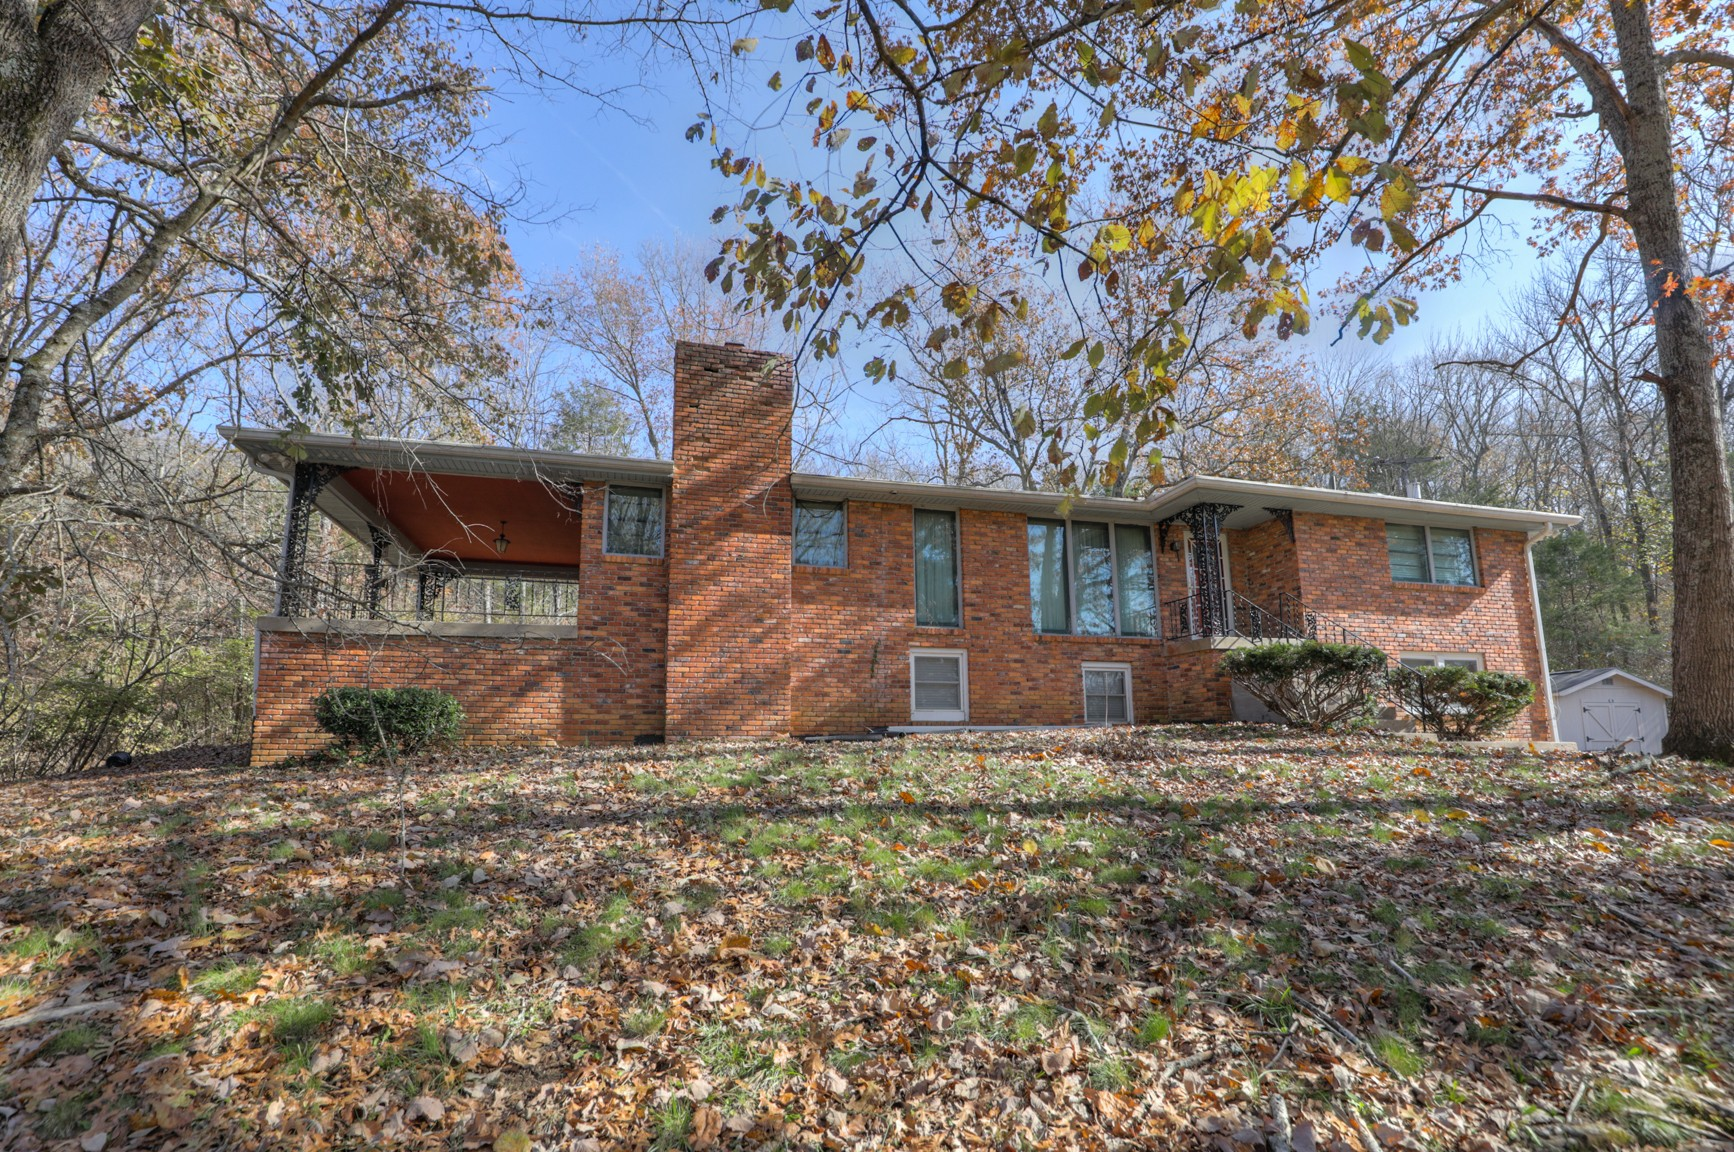 Grab this rare find today! Come see this 3000 Sq Ft Brick 4bd rm 3 bathroom Home nestled on 3.3 acre